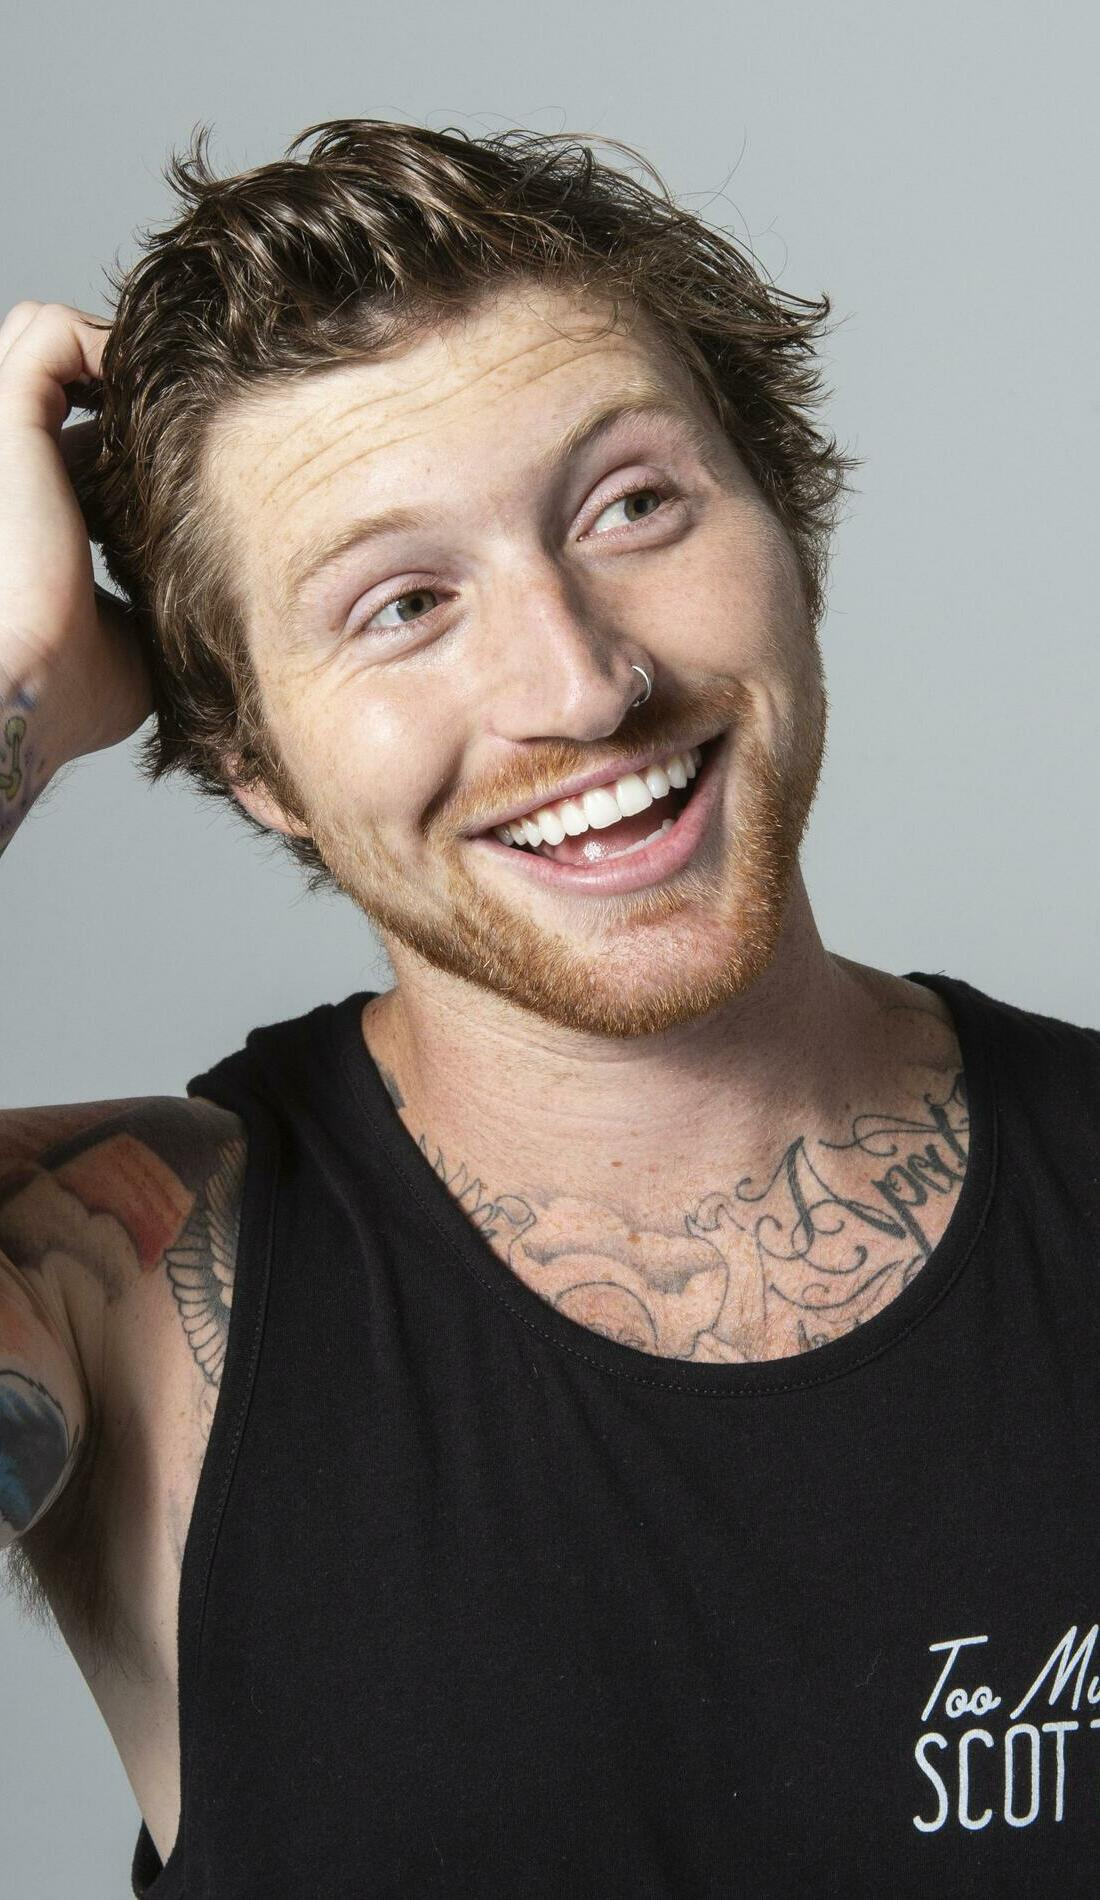 A Scotty Sire live event